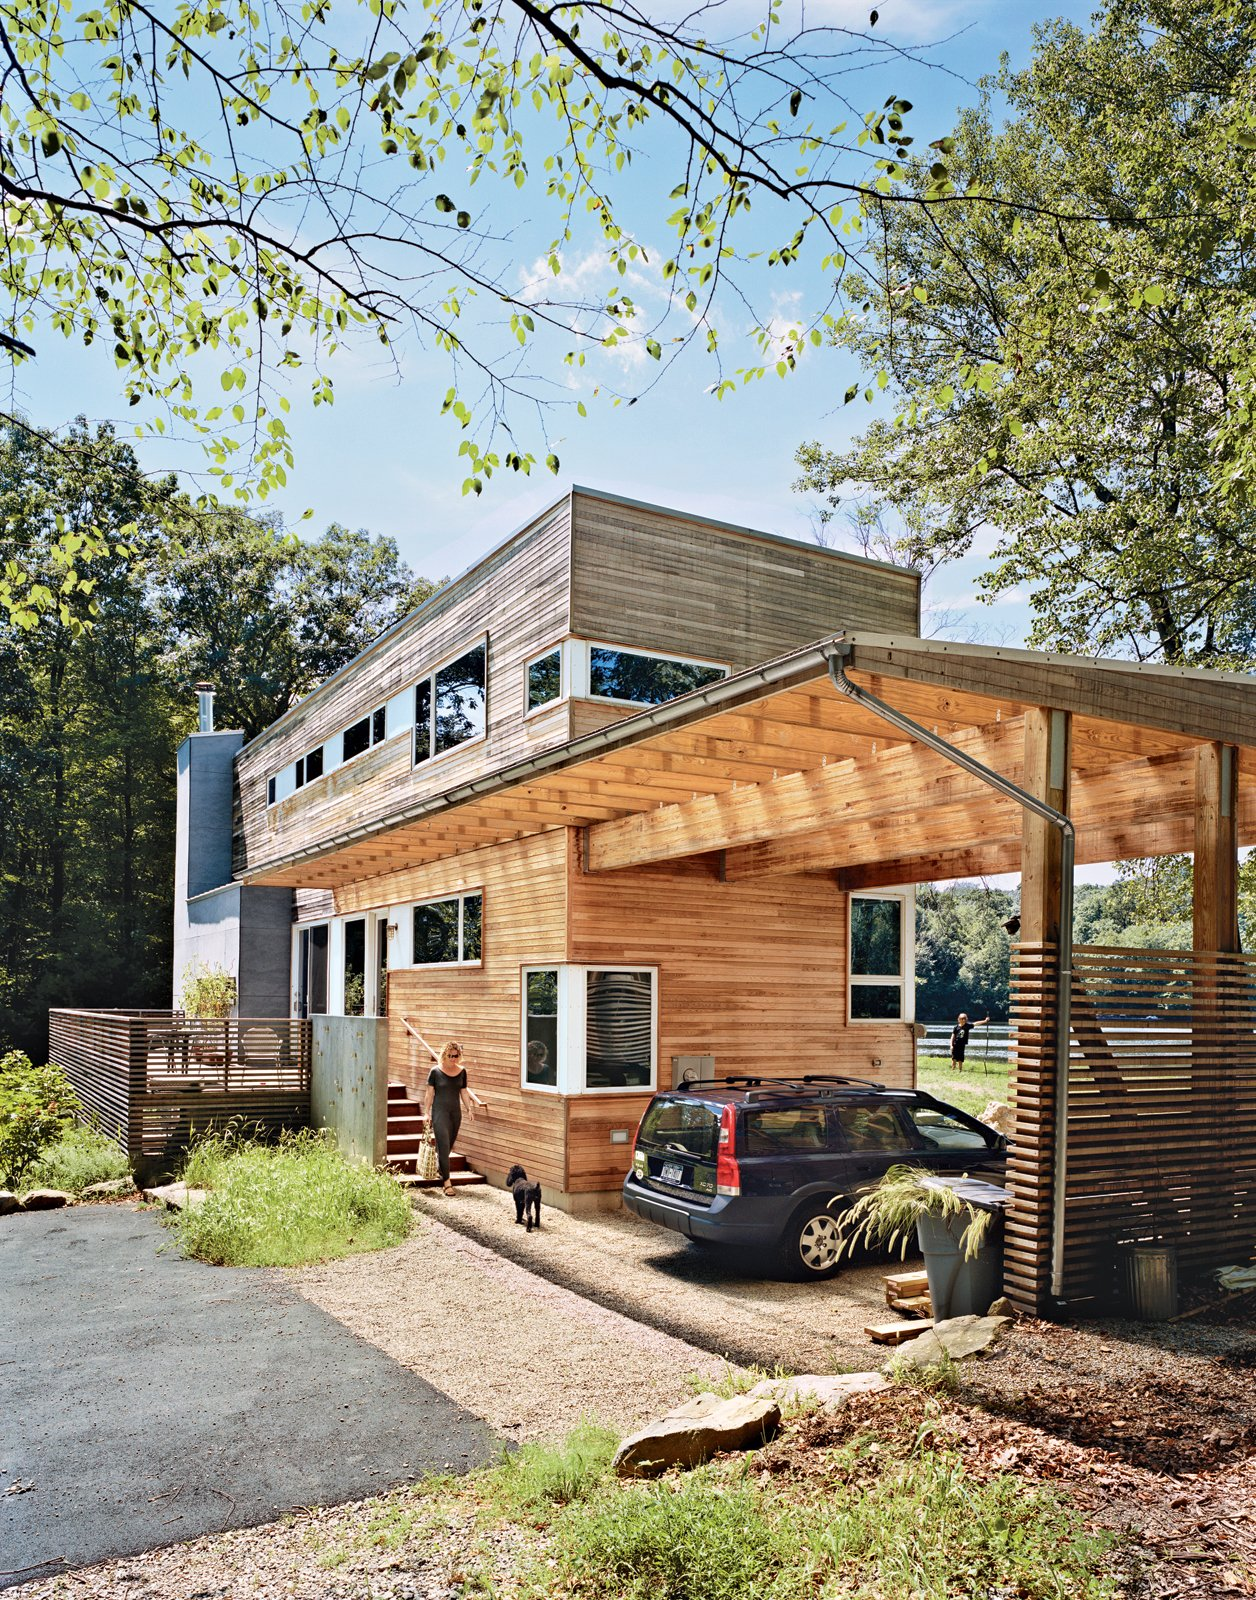 A Lakeside Prefab in New Jersey  A New Zealand expat and her son use their prefabricated lakeside New Jersey retreat as an outdoorsy counterpoint to city life.  Photo by: Mark Mahaney  Curious on what was popular last week? Click here! Tagged: Exterior, Wood Siding Material, and House.  Cabins & Hideouts by Stephen Blake from The New Zealand Native Who Can't Get Enough of the Garden State